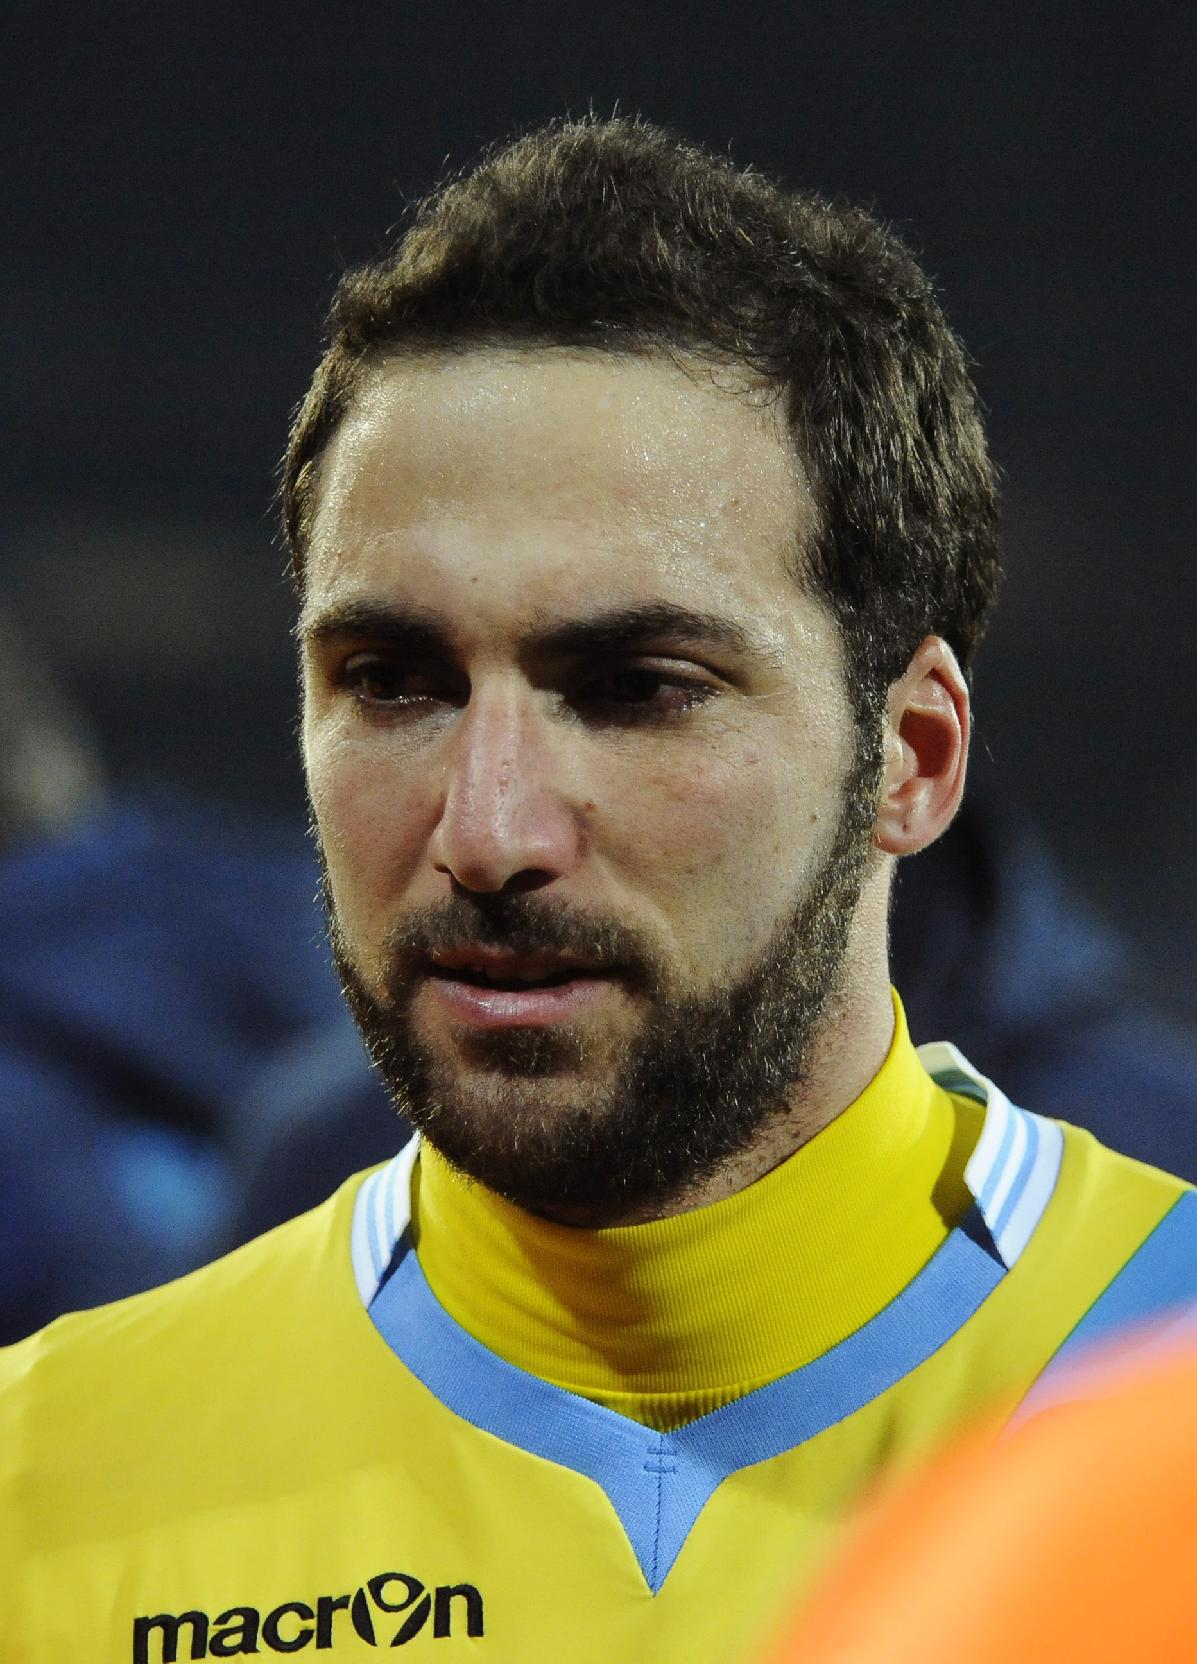 Napoli's Gonazalo Higuain walks off the field at the end of a Champions League, group F, soccer match between Napoli and Arsenal, at the Naples San Paolo stadium, Italy, Wednesday, Dec. 11, 2013. Ten-man Arsenal advanced to the Champions League knockout phase for the 14th consecutive year despite a 2-0 loss Wednesday at Napoli, which was eliminated. Gonzalo Higuain scored in the 73rd minute but the San Paolo stadium was soon silenced when word arrived that Borussia Dortmund had scored a late goal in a 2-1 win at Marseille to win Group F